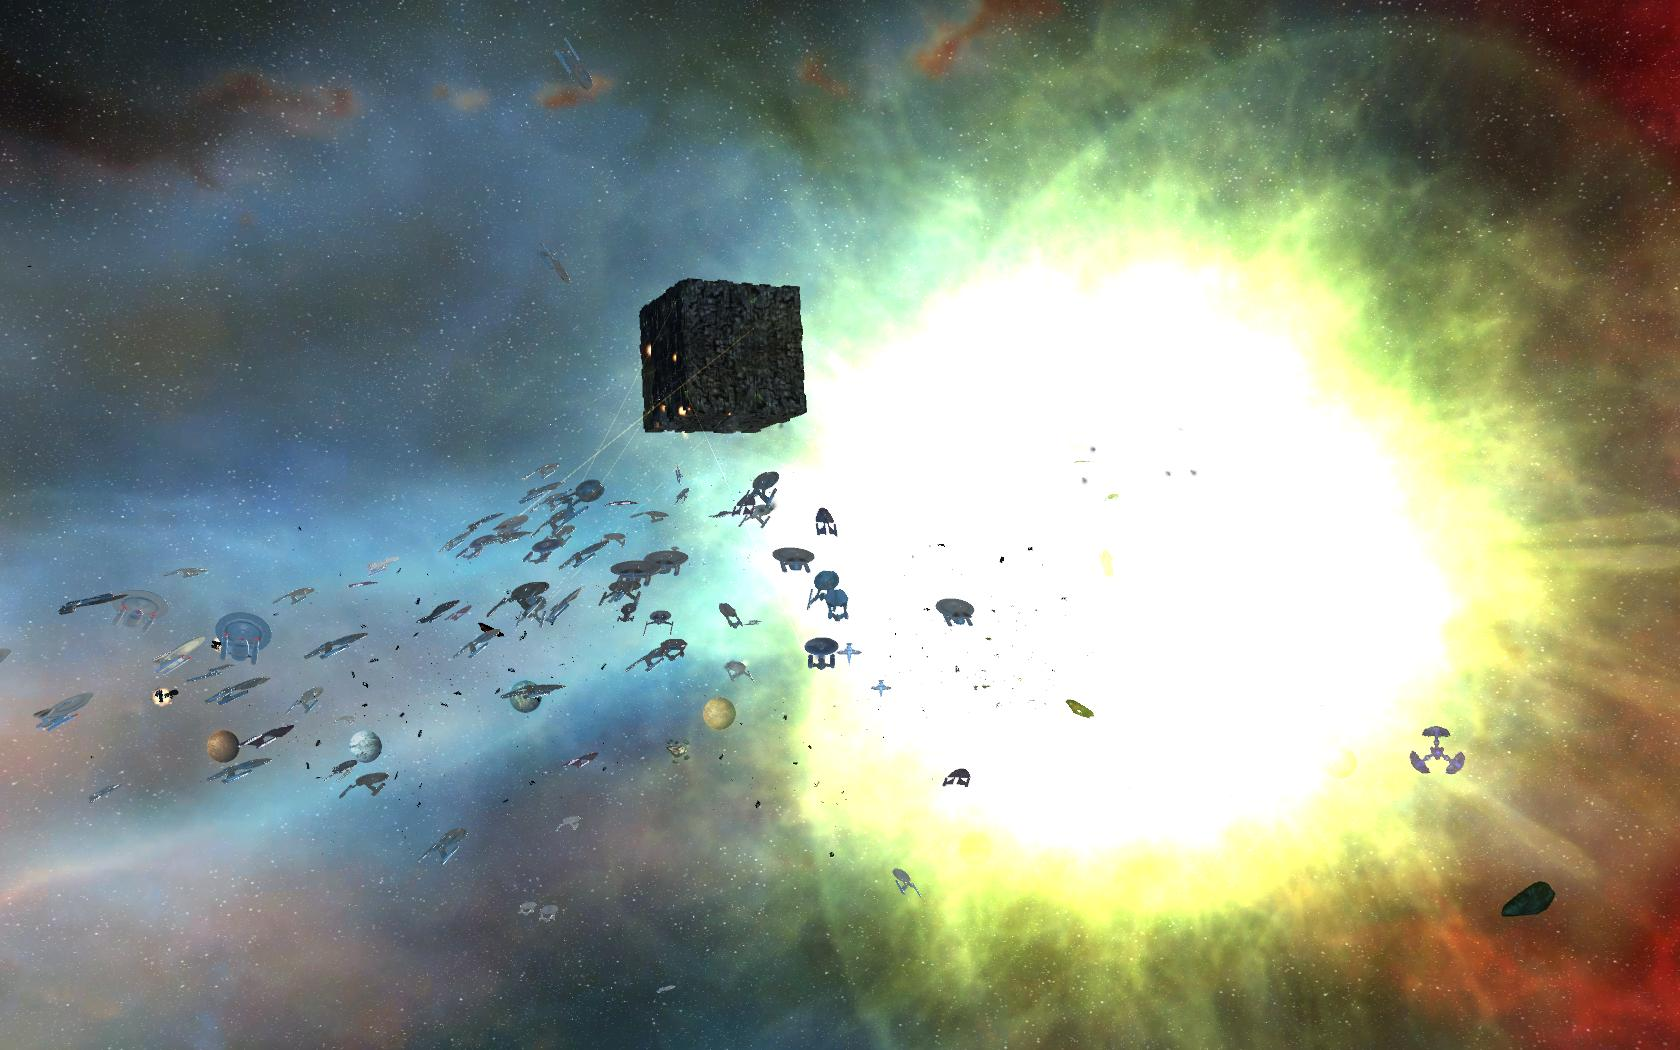 die borg explosions cubes - photo #14